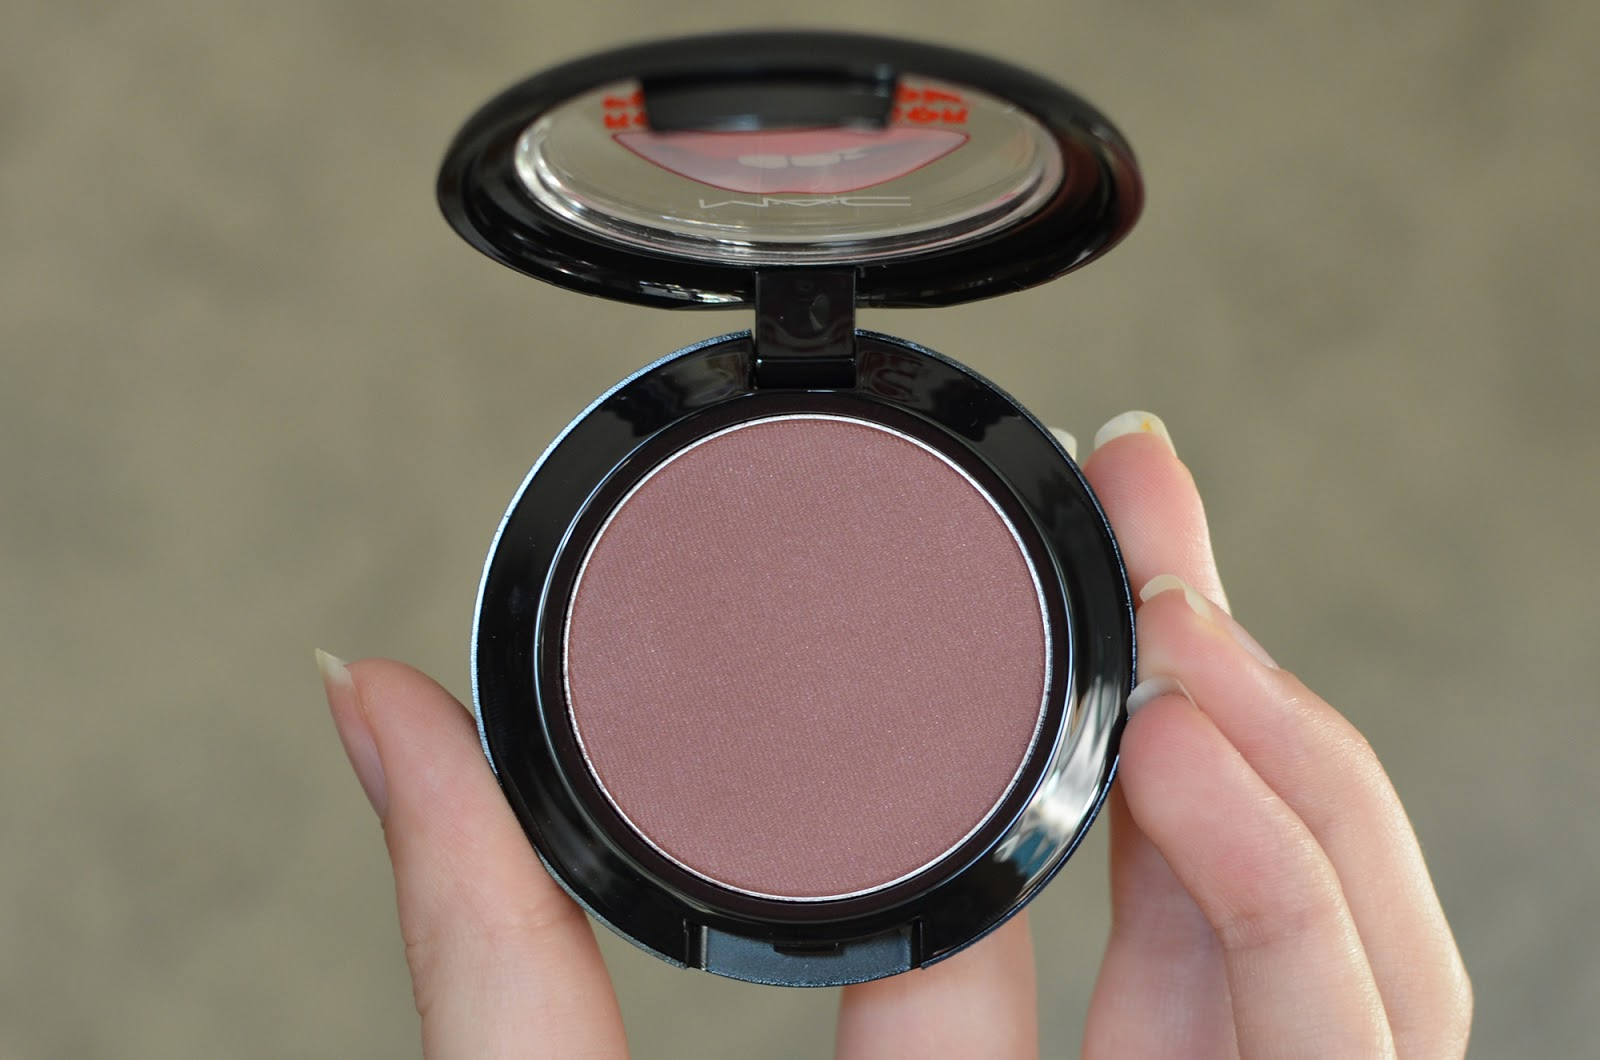 Crazed Imagination blush from the MAC Rocky Horror collection